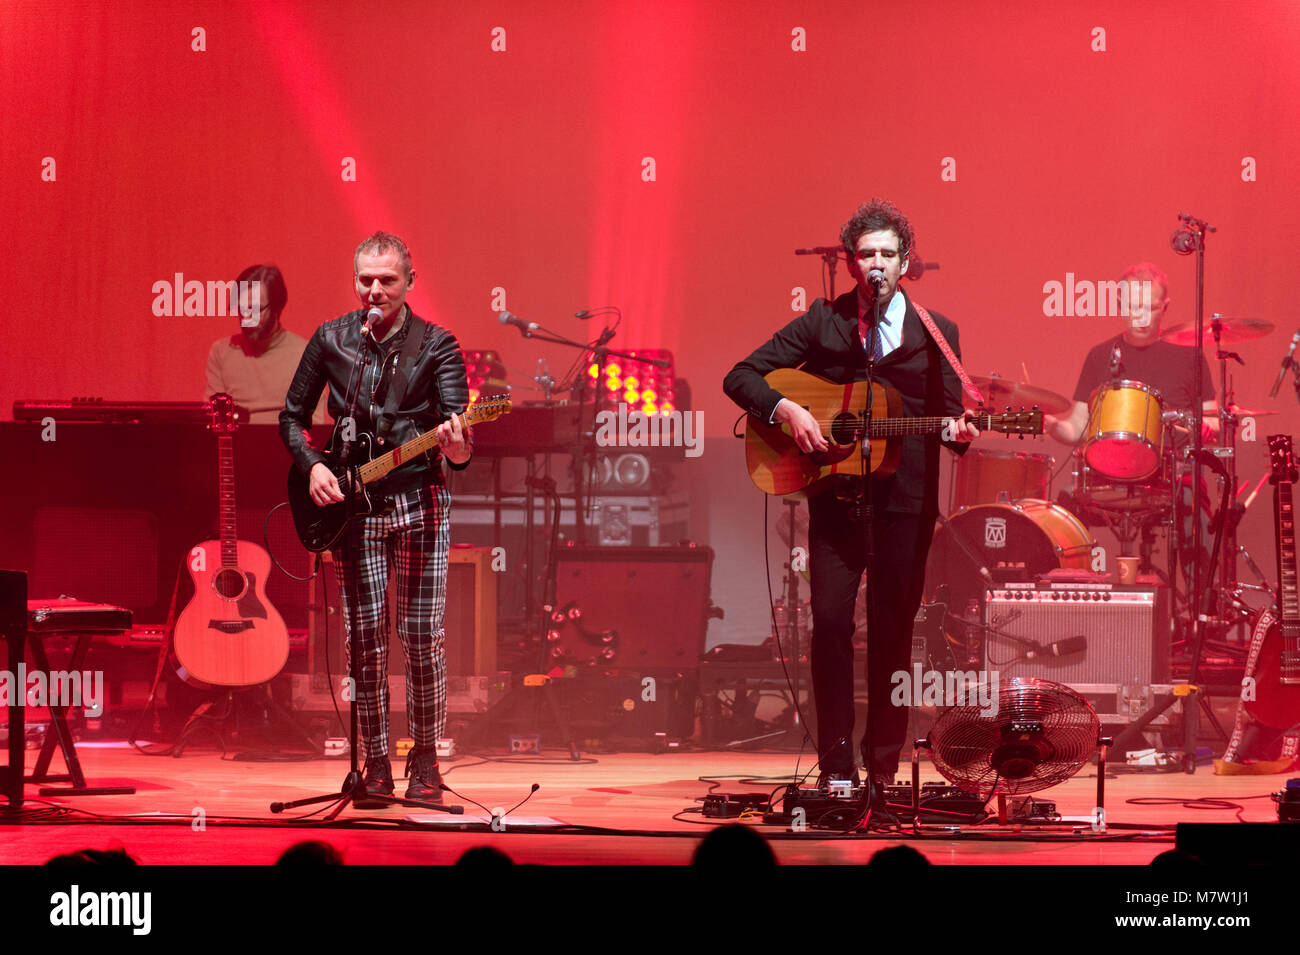 Manchester, UK. 12th March, 2018. Indie rock band Belle and Sebastian in concert at The Bridgewater Hall. Manchester, - Stock Image